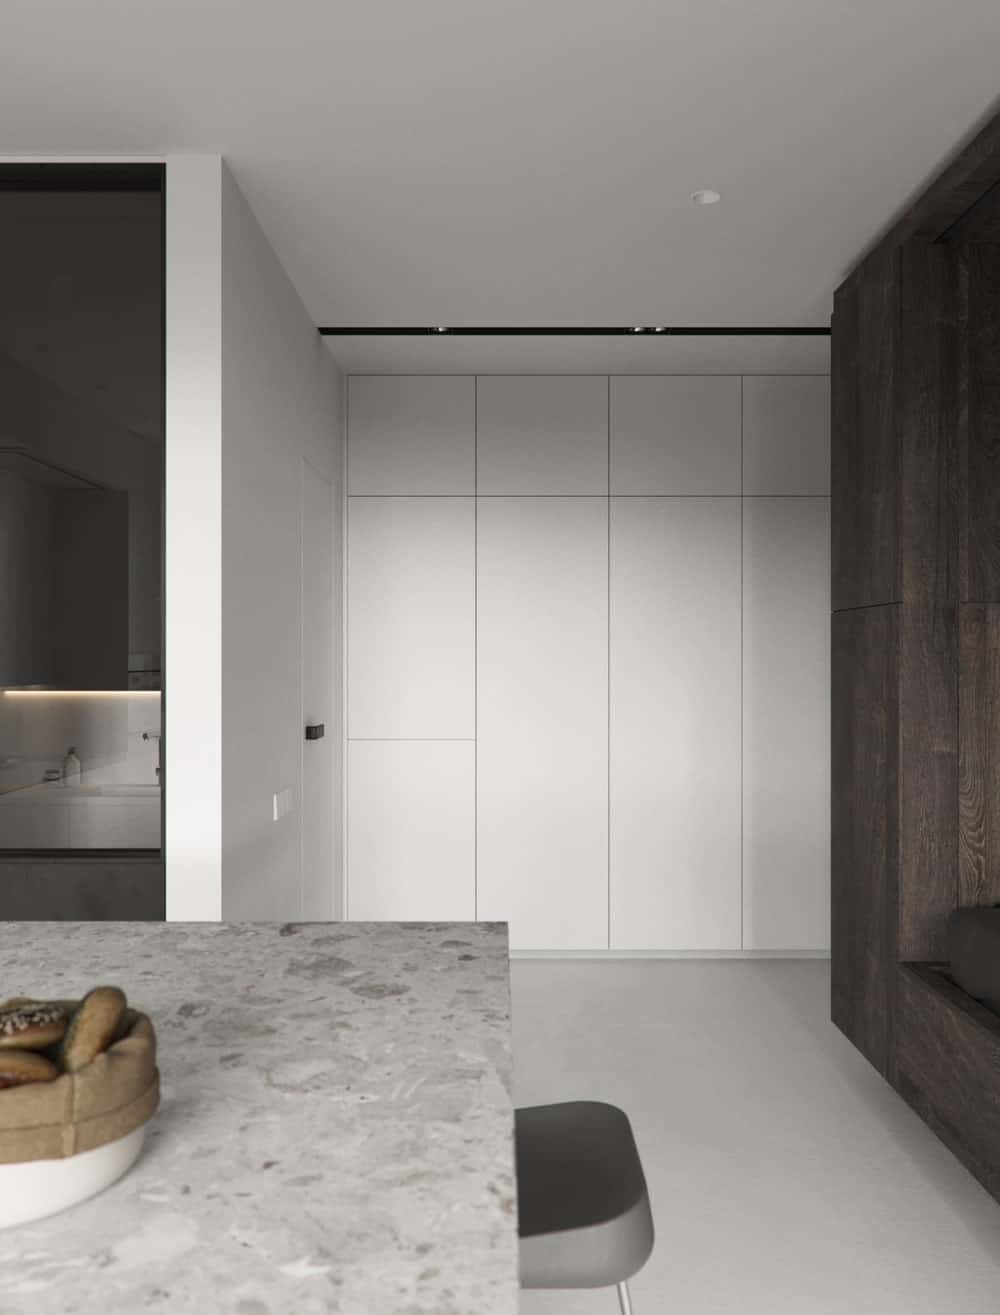 This is the white wall with built-in modern cabinets that is just a few steps from the kitchen and bed.